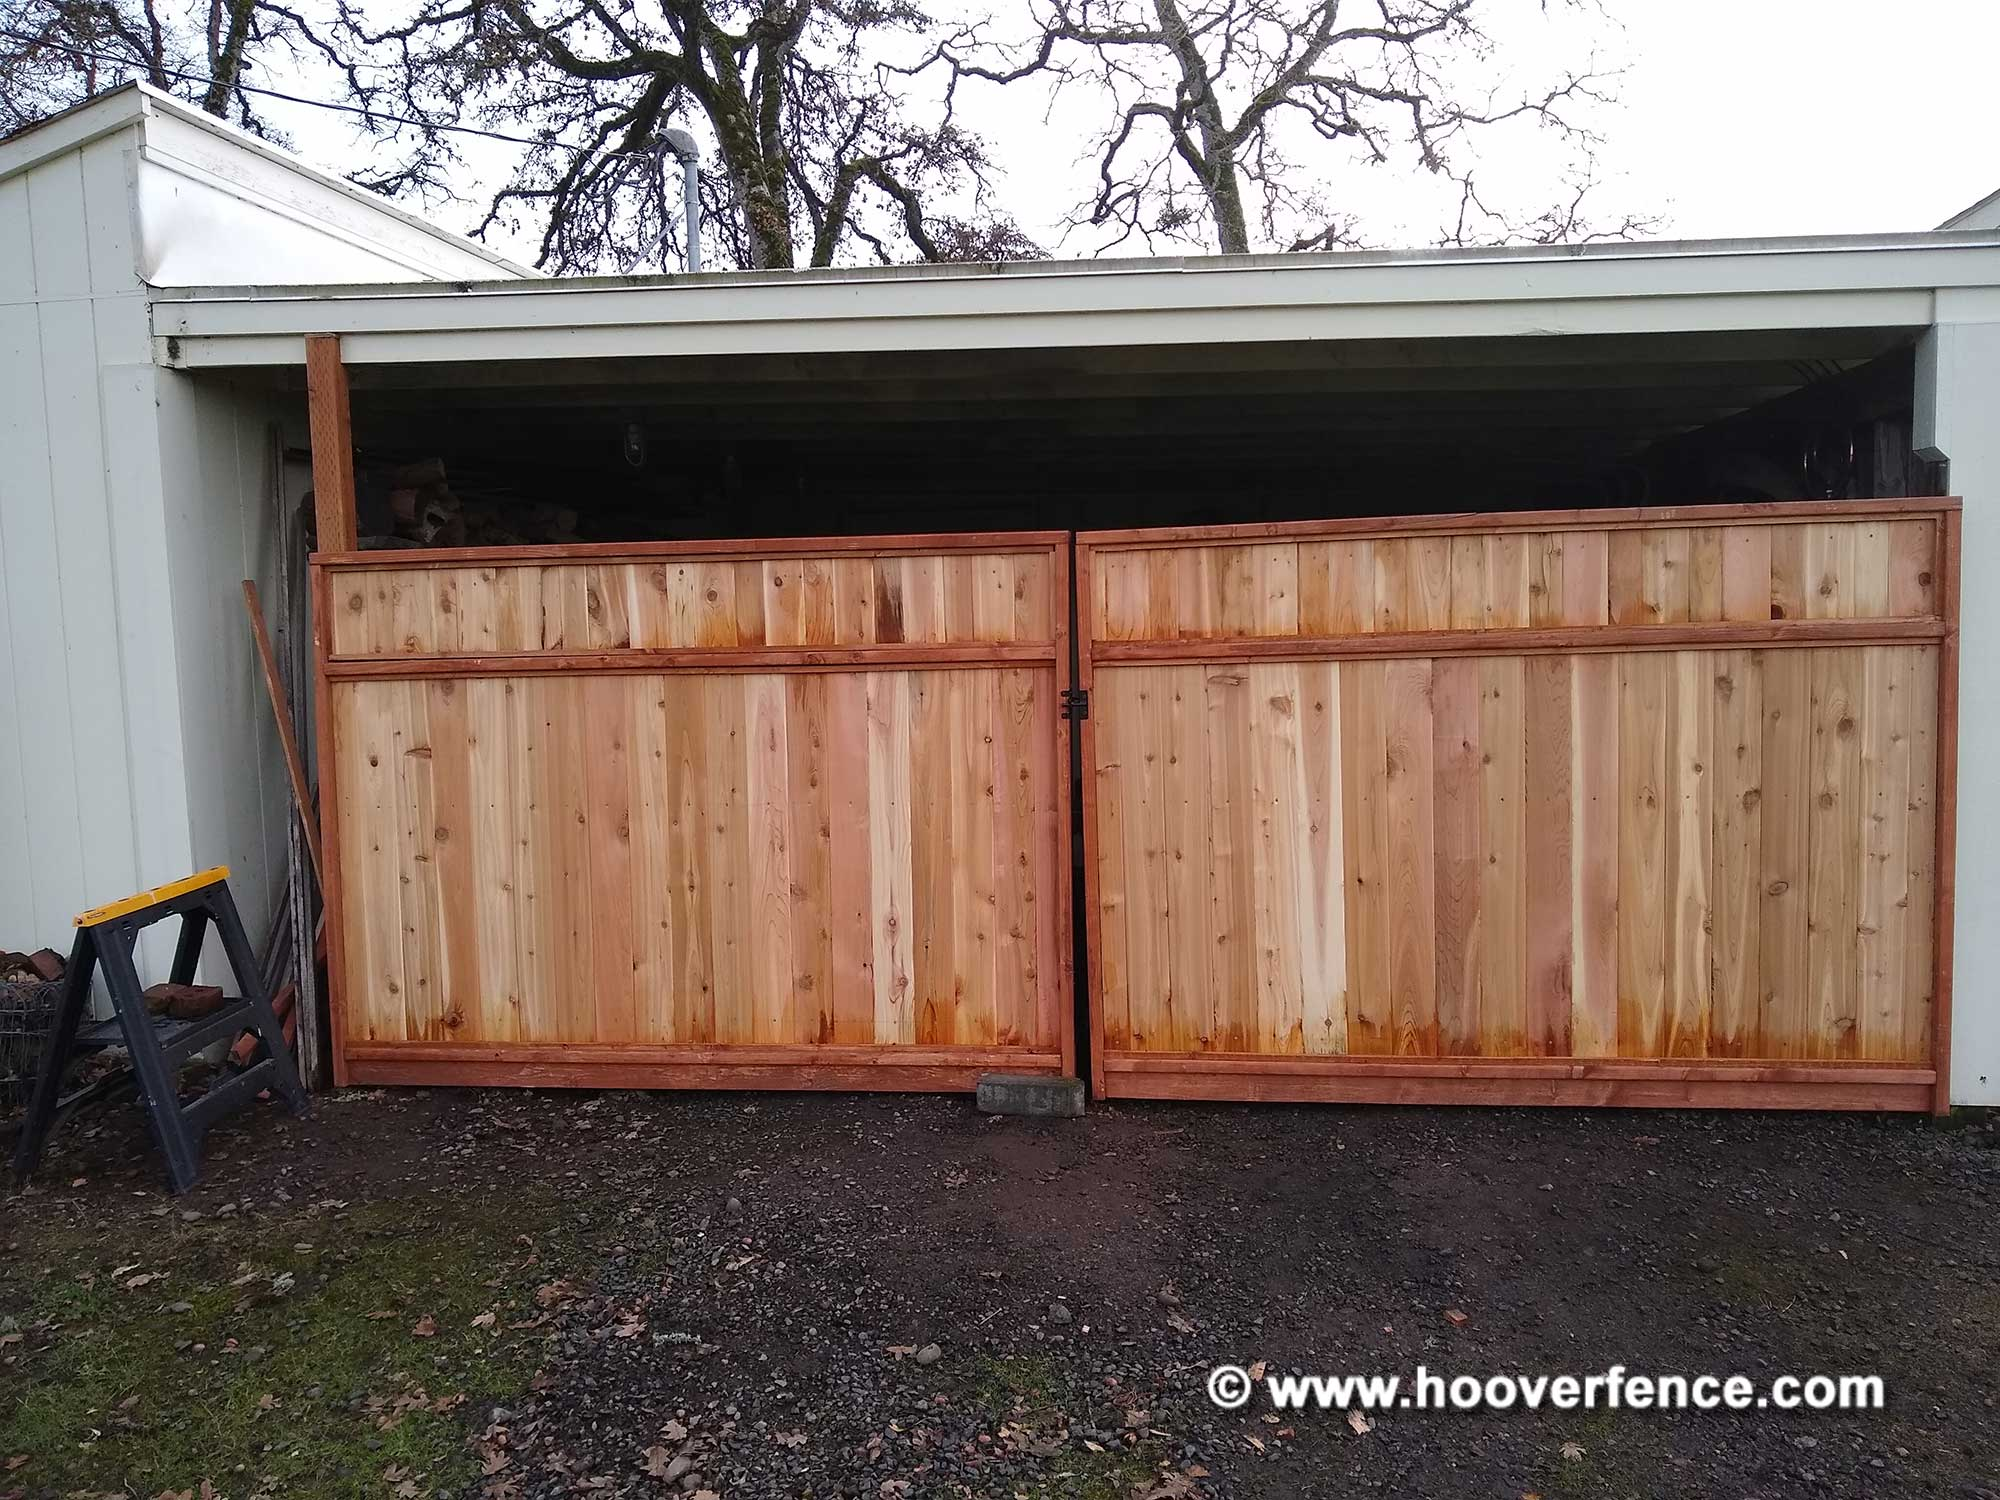 Customer Install - Custom Wood Gate Built Using DAG-60-3 Kit and Pre-Assembled Wood Panels